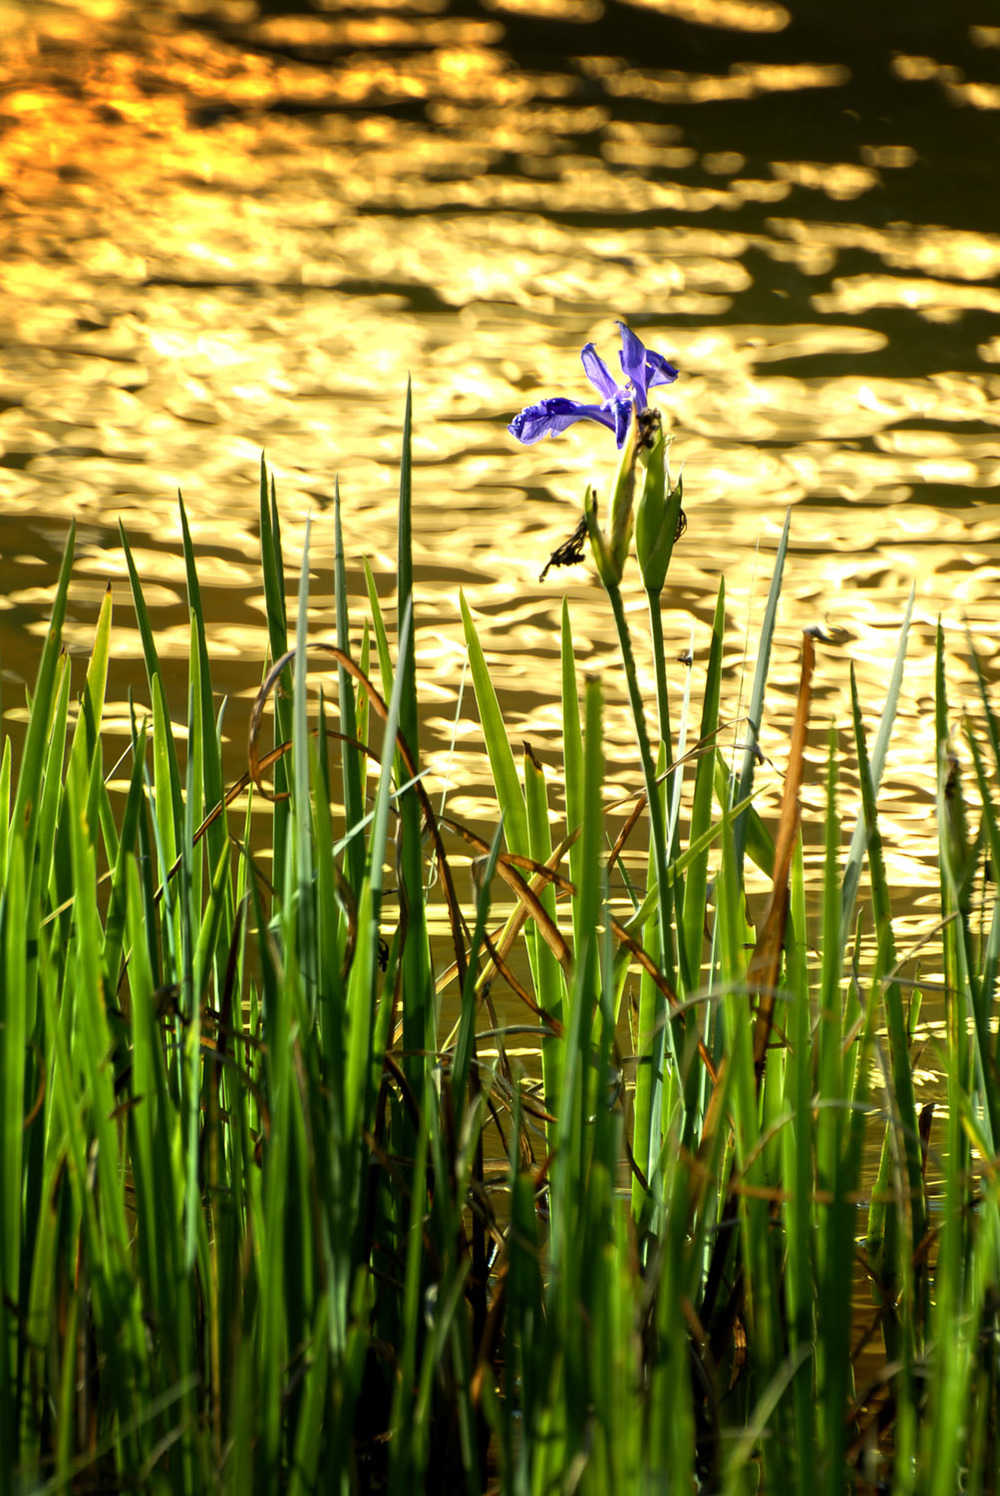 Iris and reflection of Kinkakuji Temple